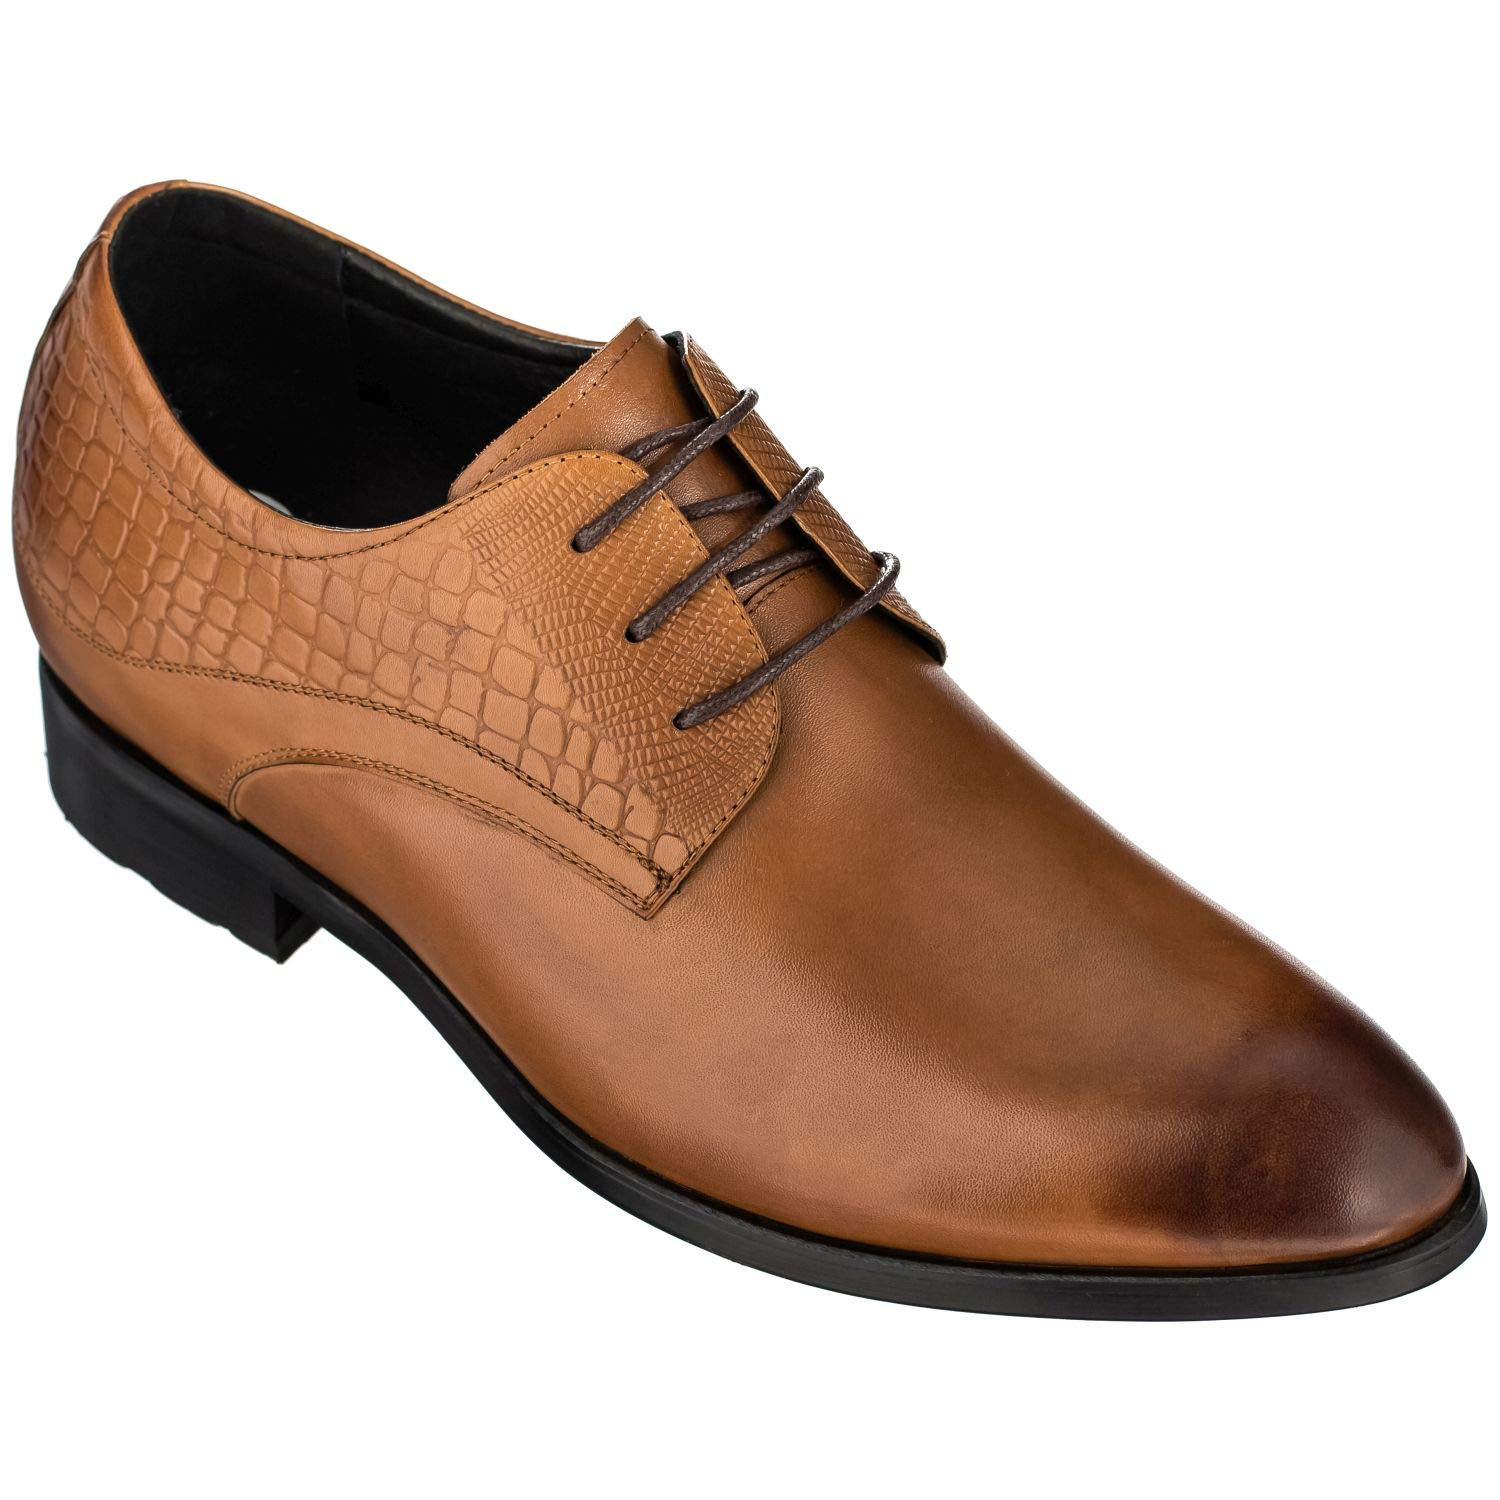 To acquire Brown Light dress shoes picture trends